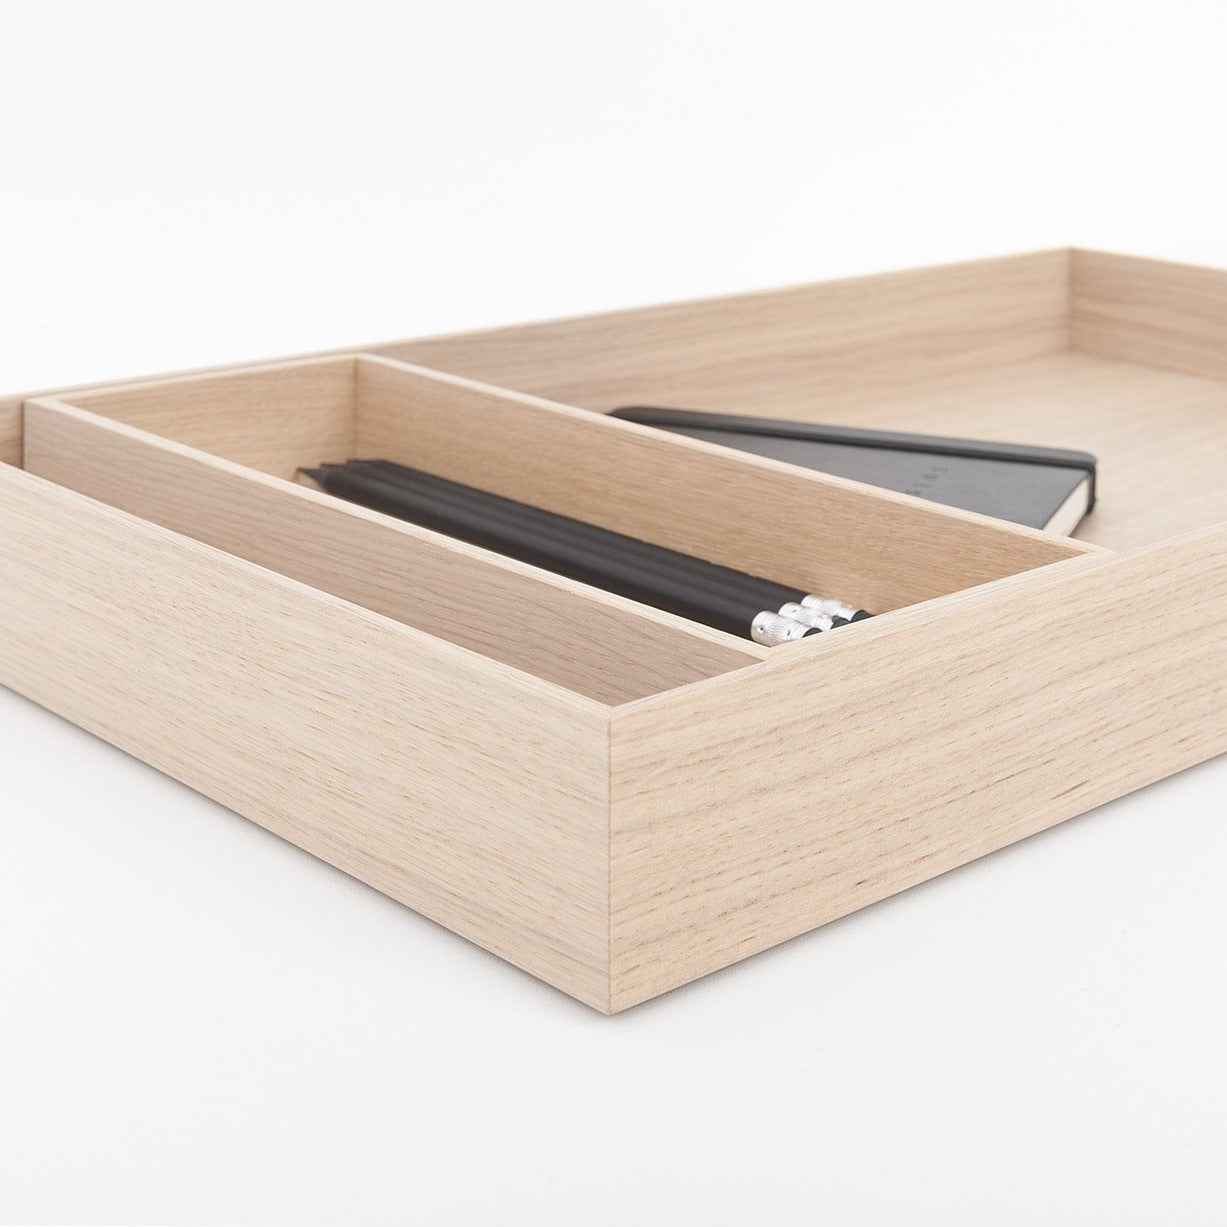 Interior compartments for drawers (4594305532001)